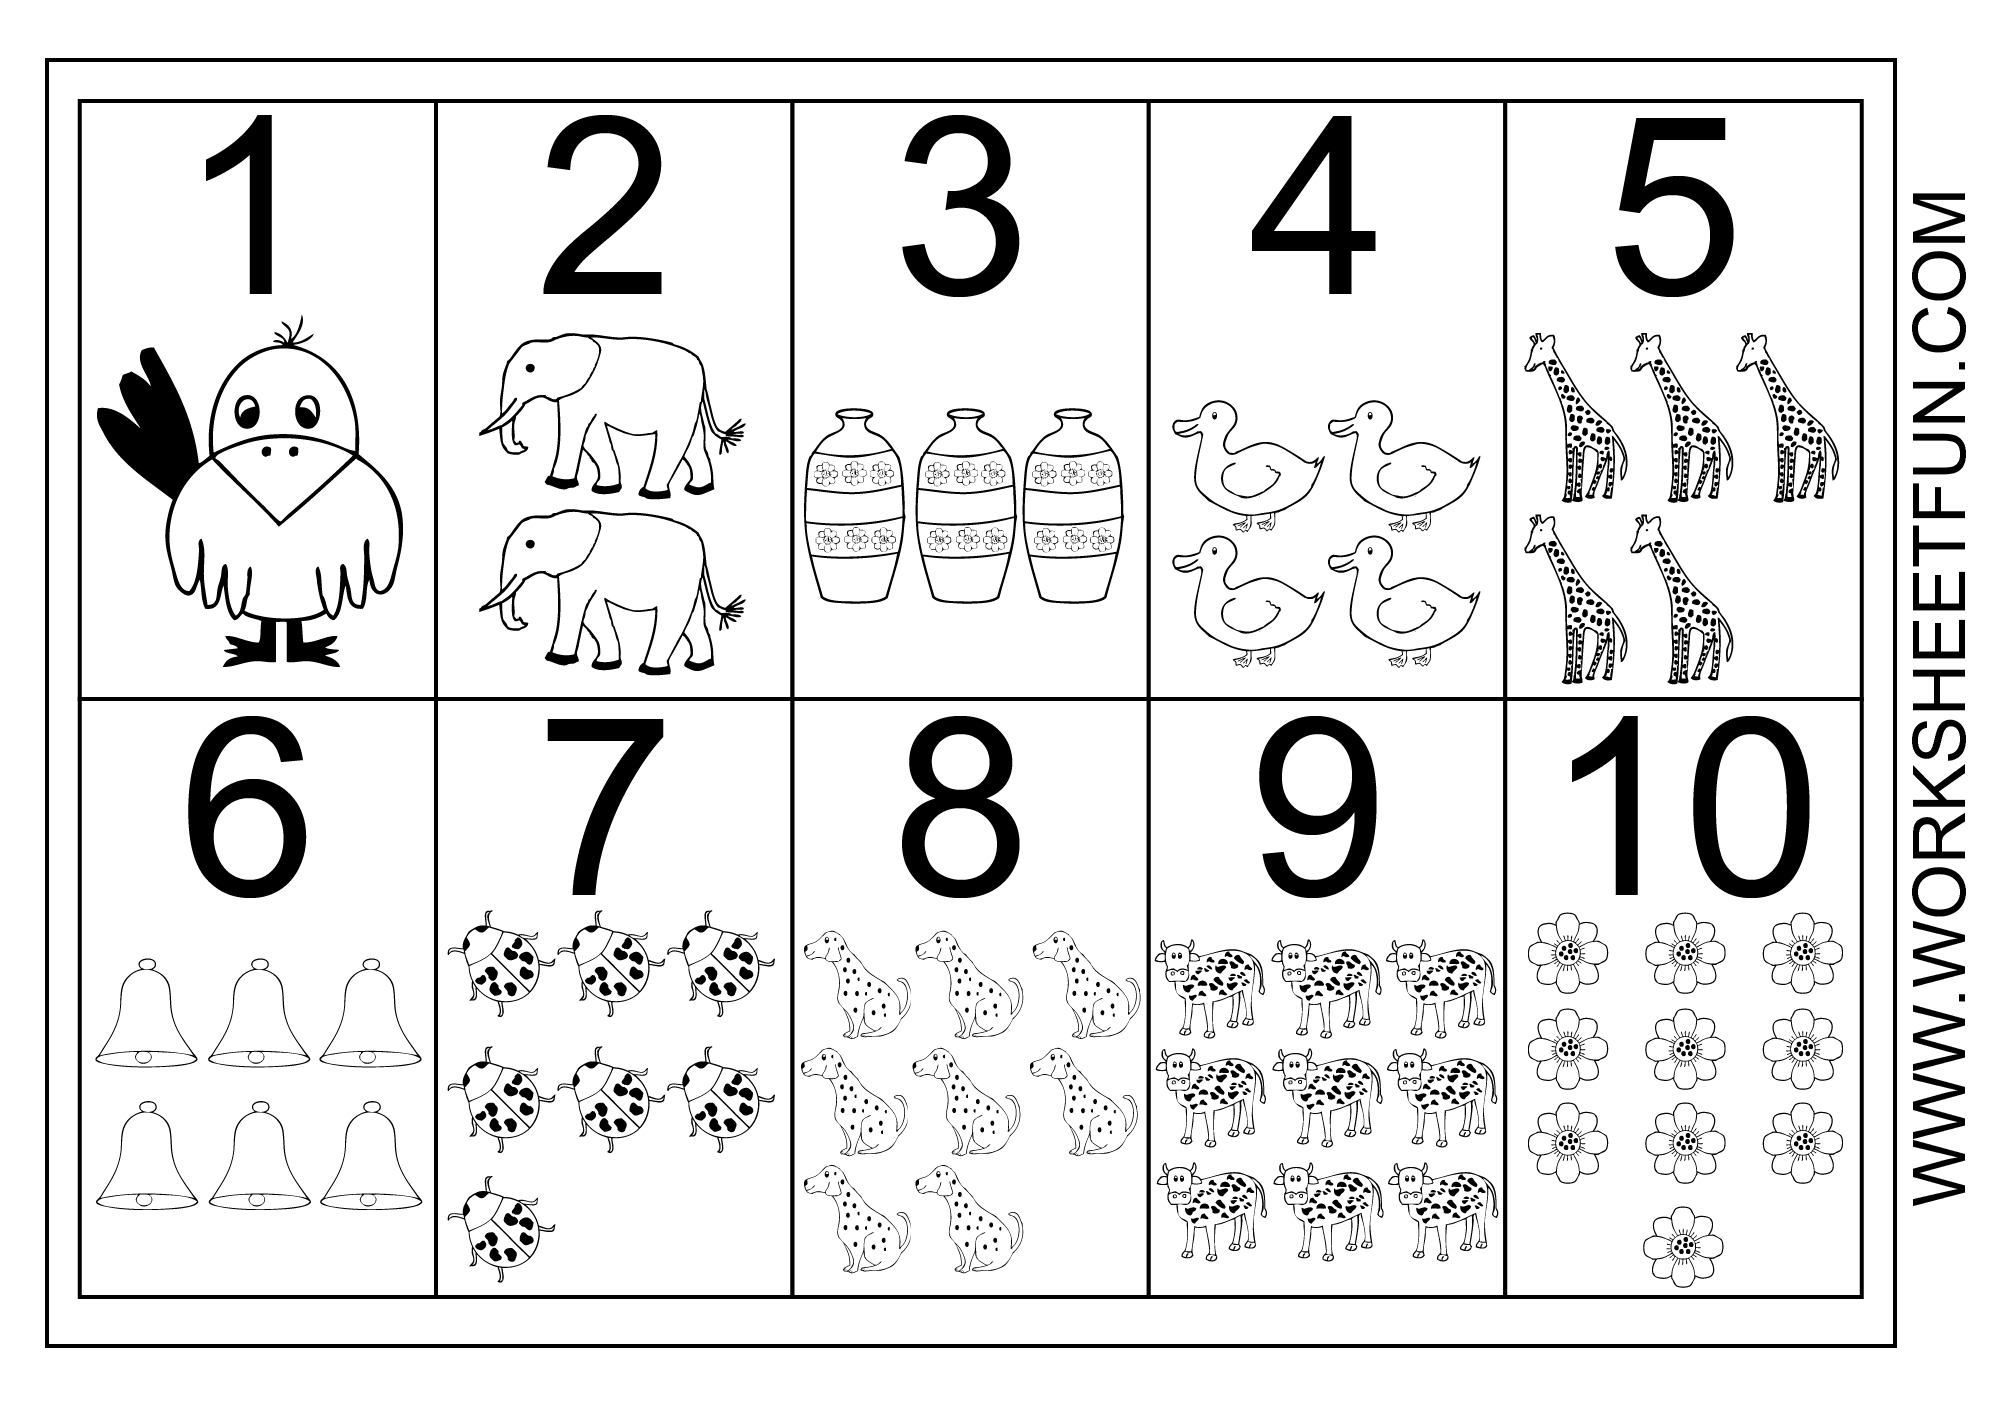 Picture Number Chart 1-10 | Printable Worksheets - Free Printable Number Chart 1 10